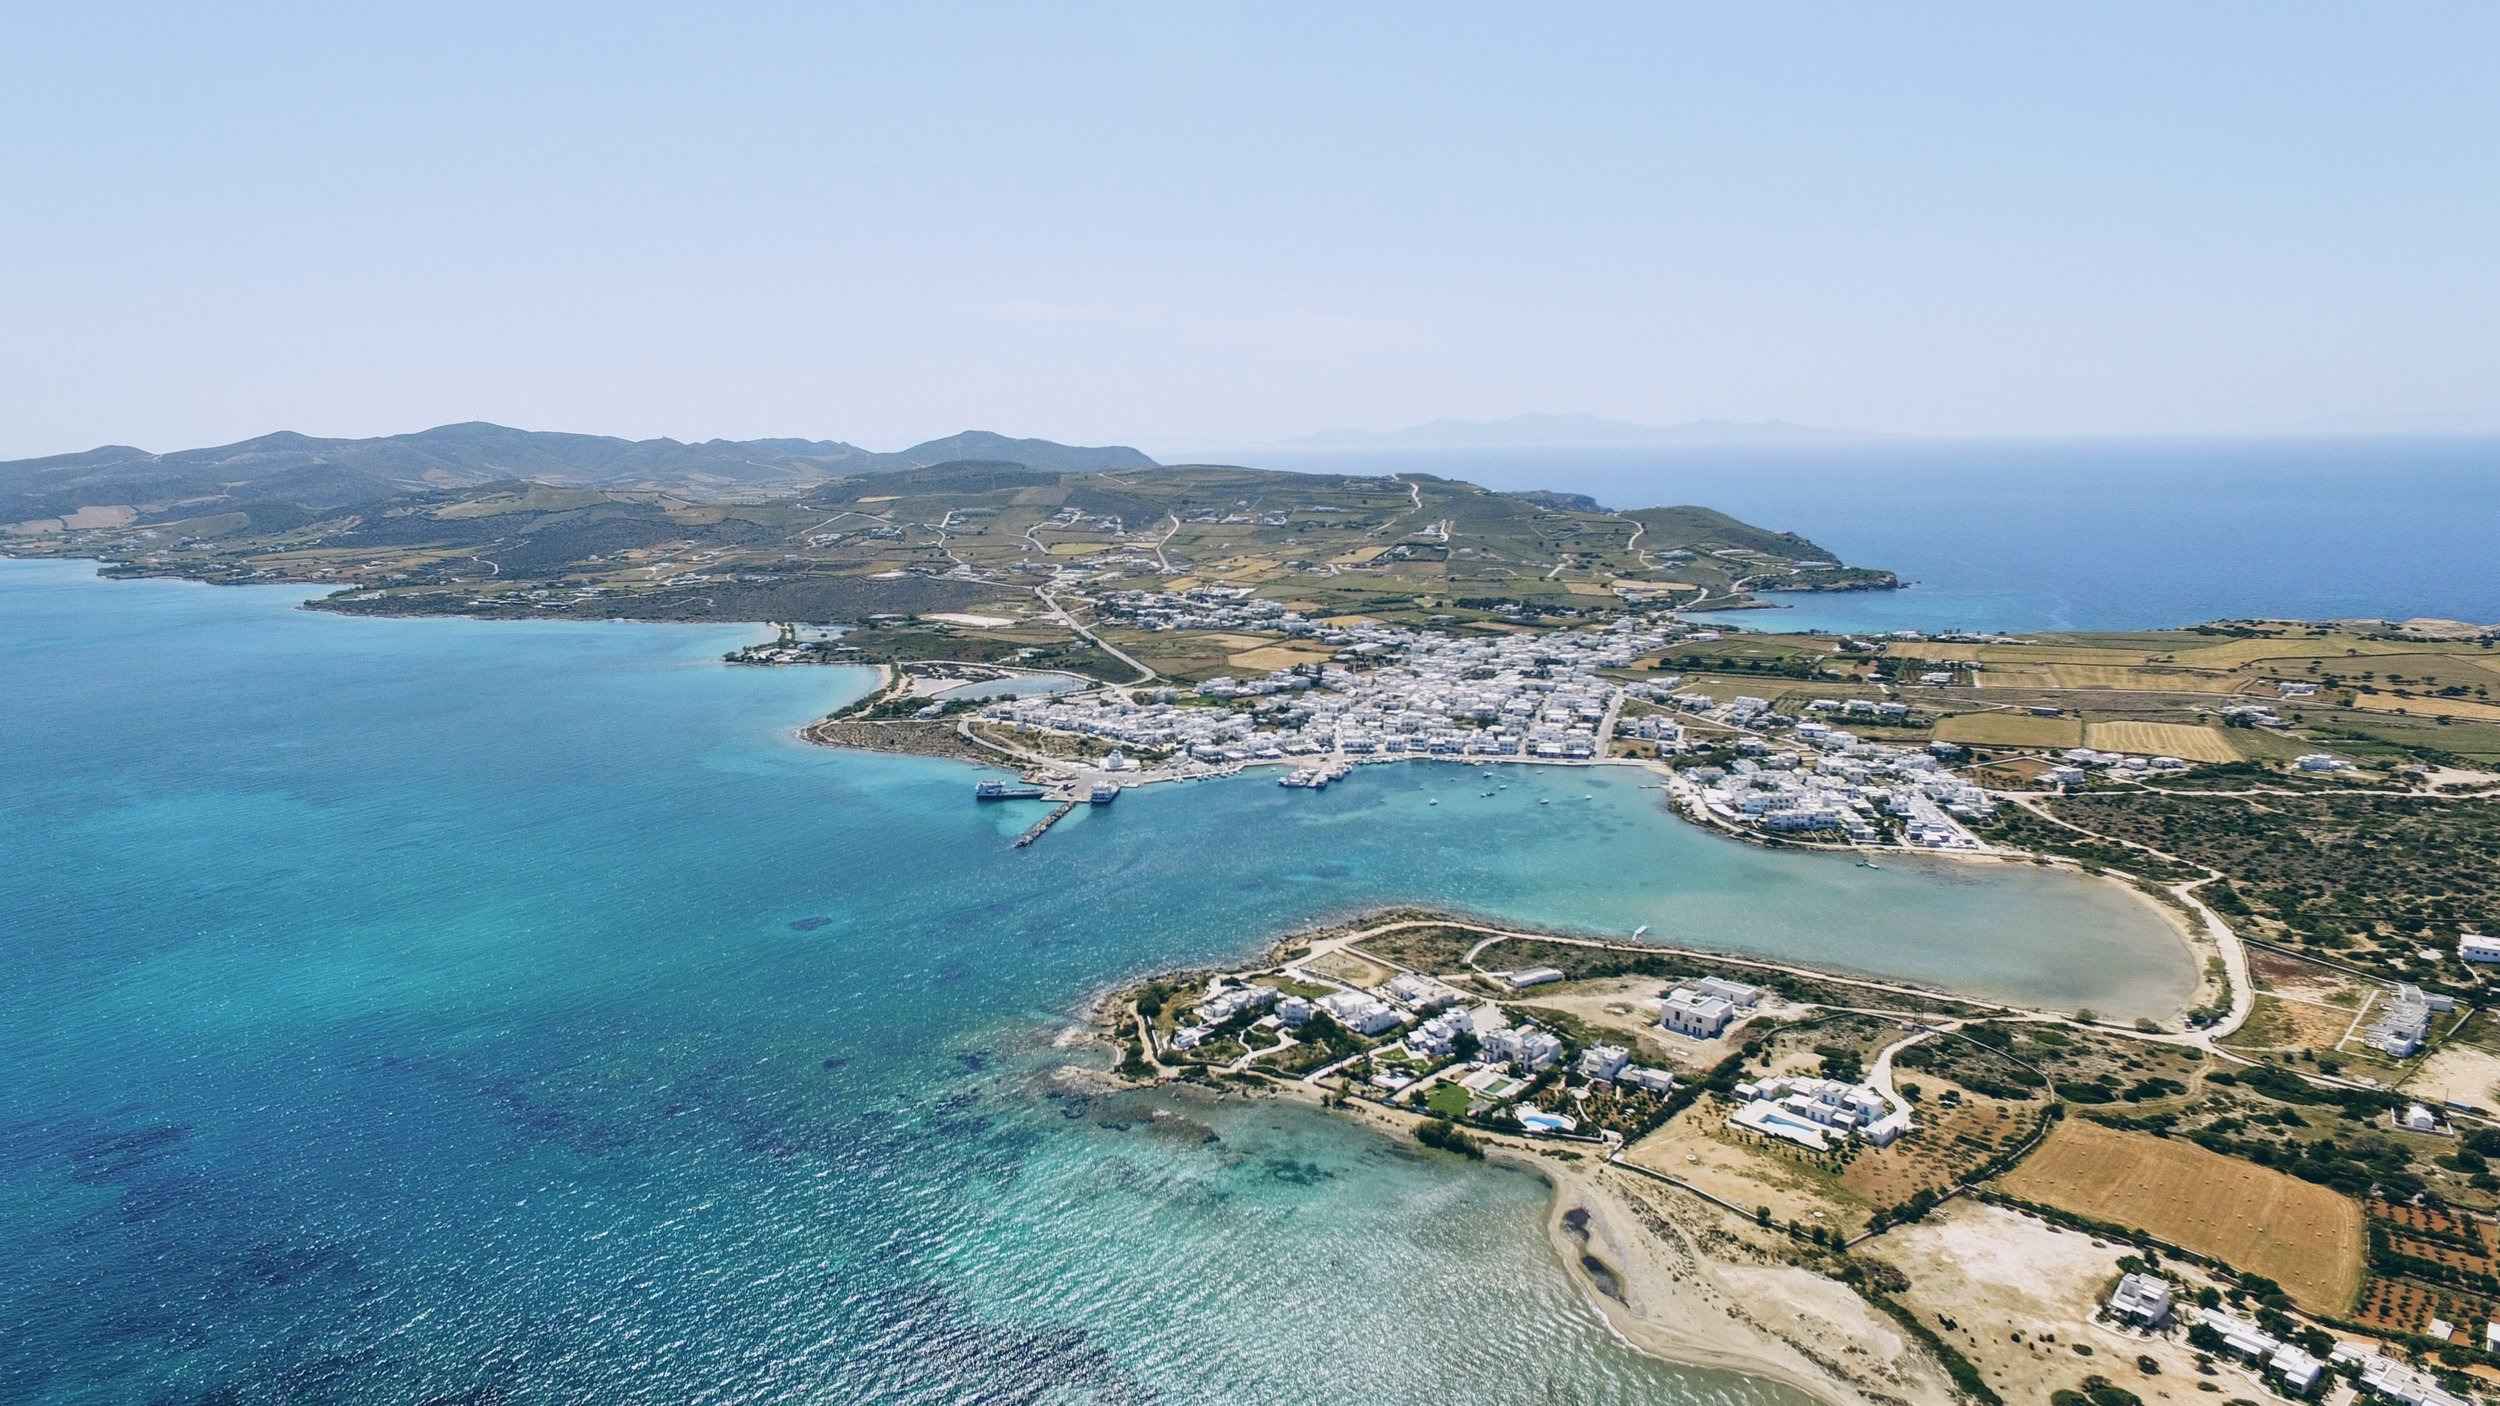 The Weekly Getaway: balancing between mellow days and posh vibrant nights in Antiparos